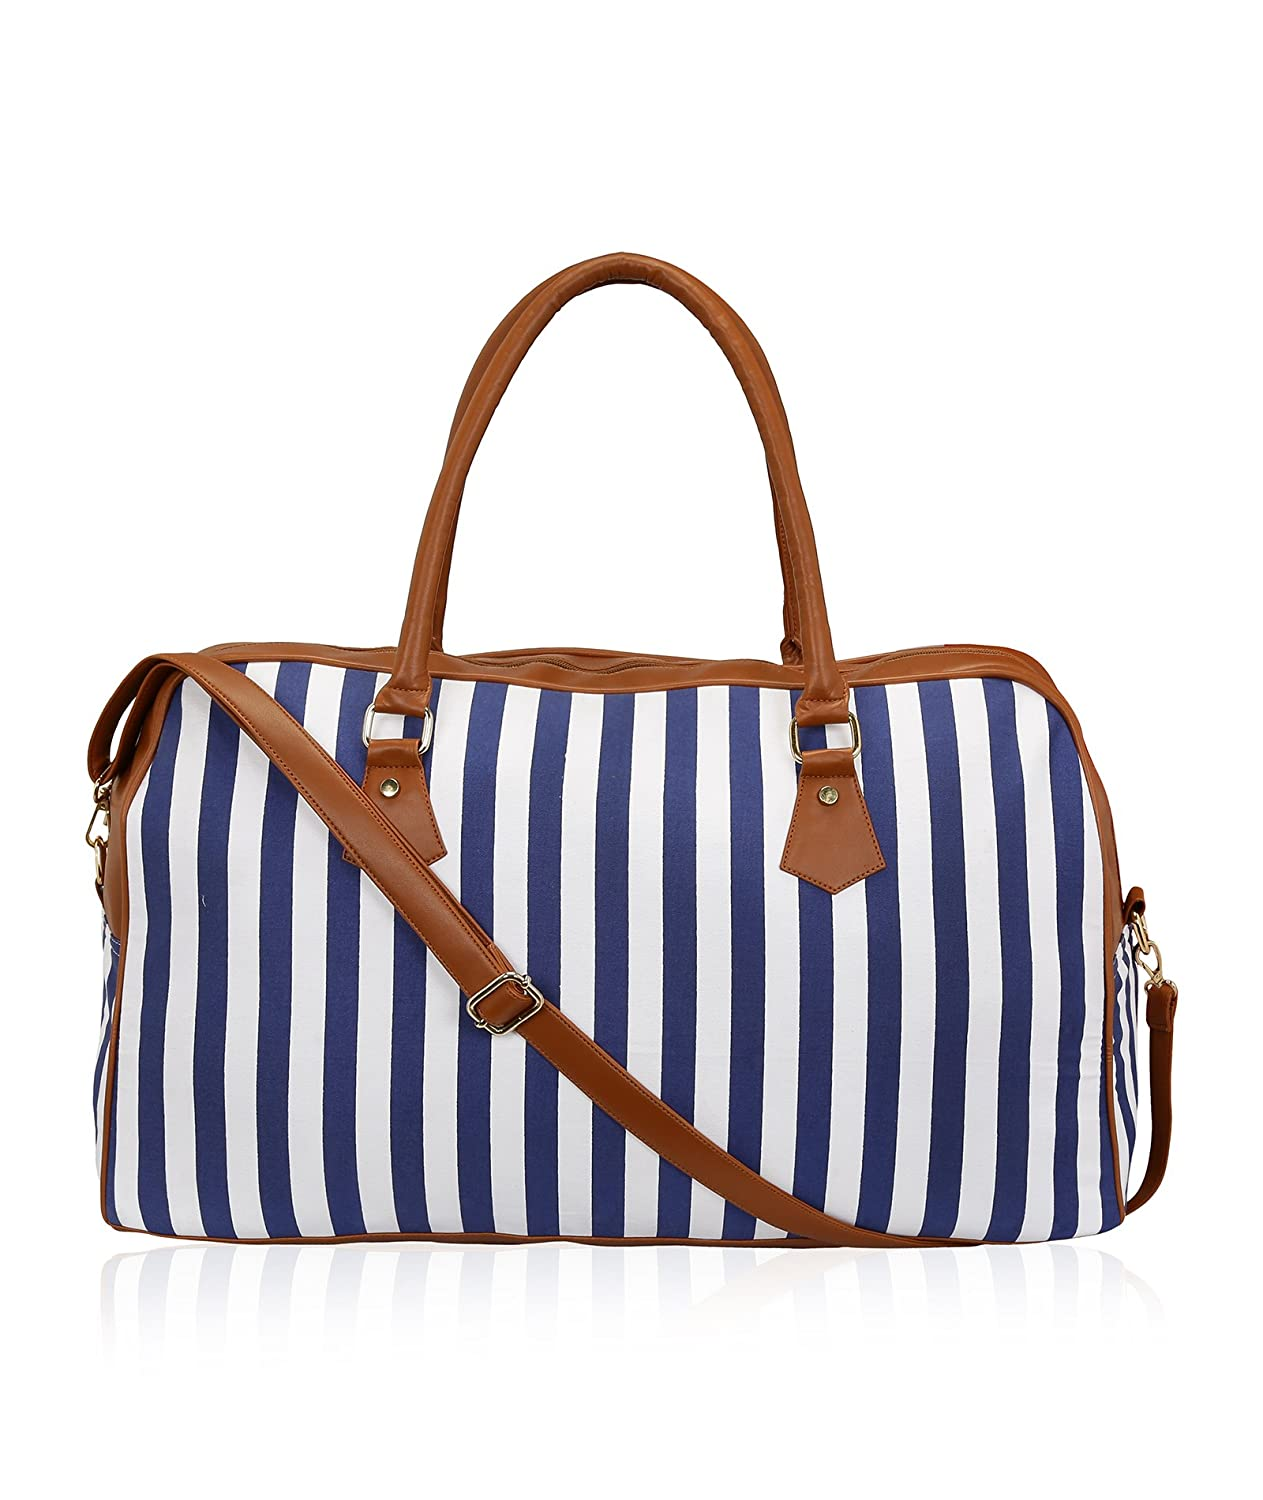 Travels Bag For Women & Women's Weekender Bag